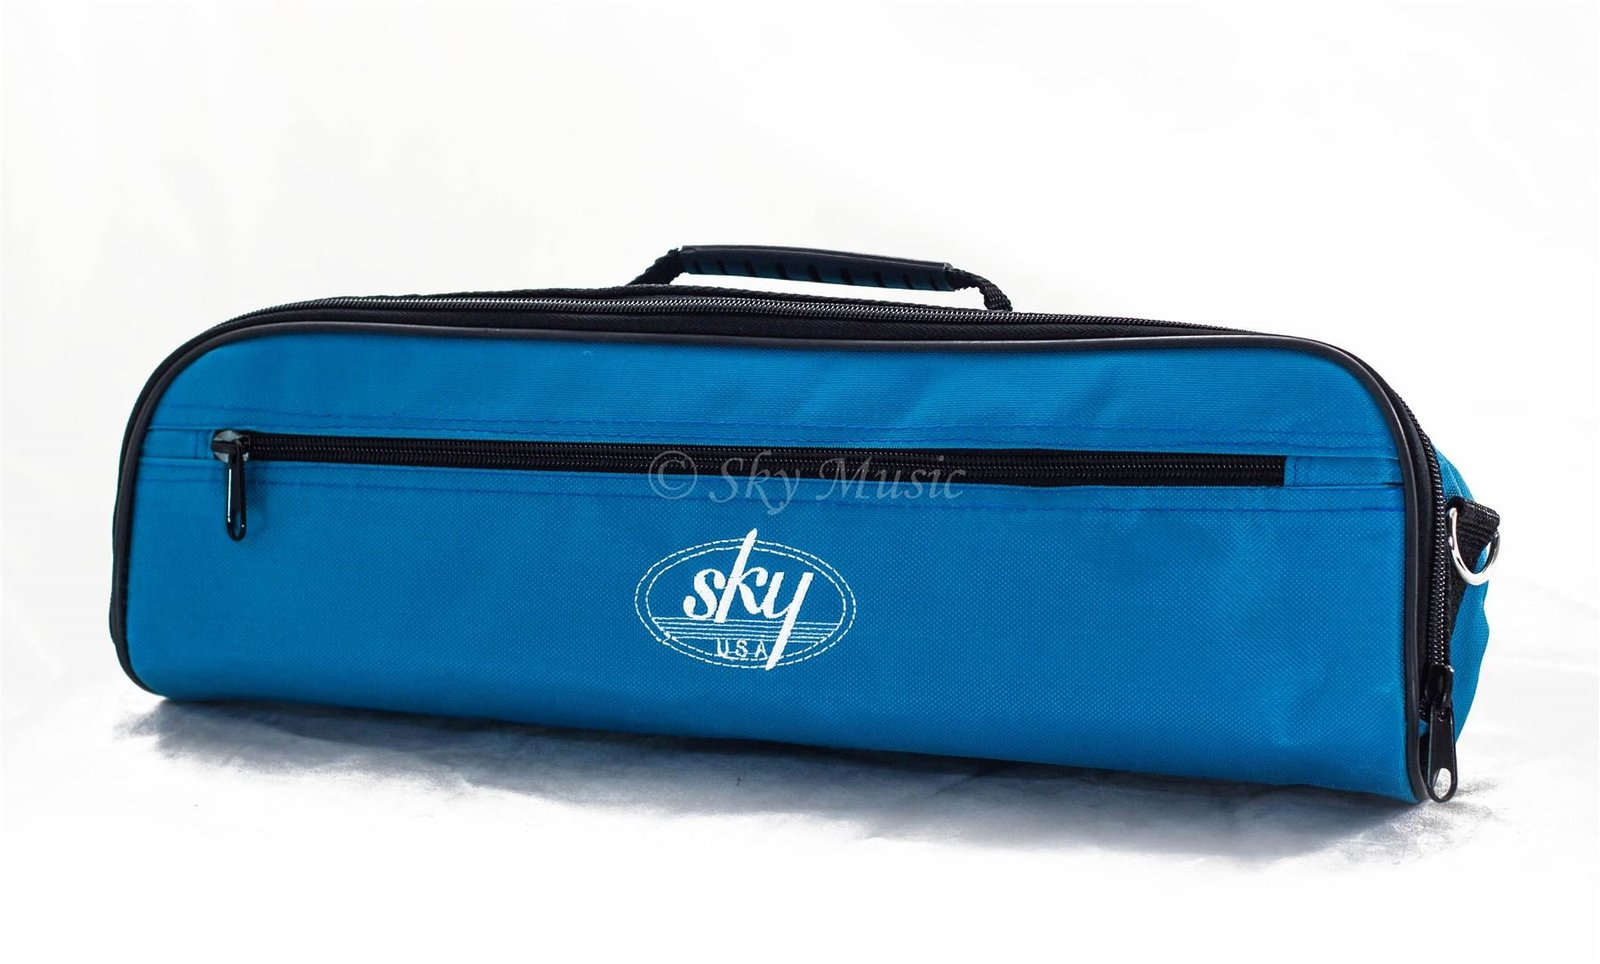 Sky Brand New C Flute Hard Case Cover w Side Pocket/Handle/Strap Sky Blue Color